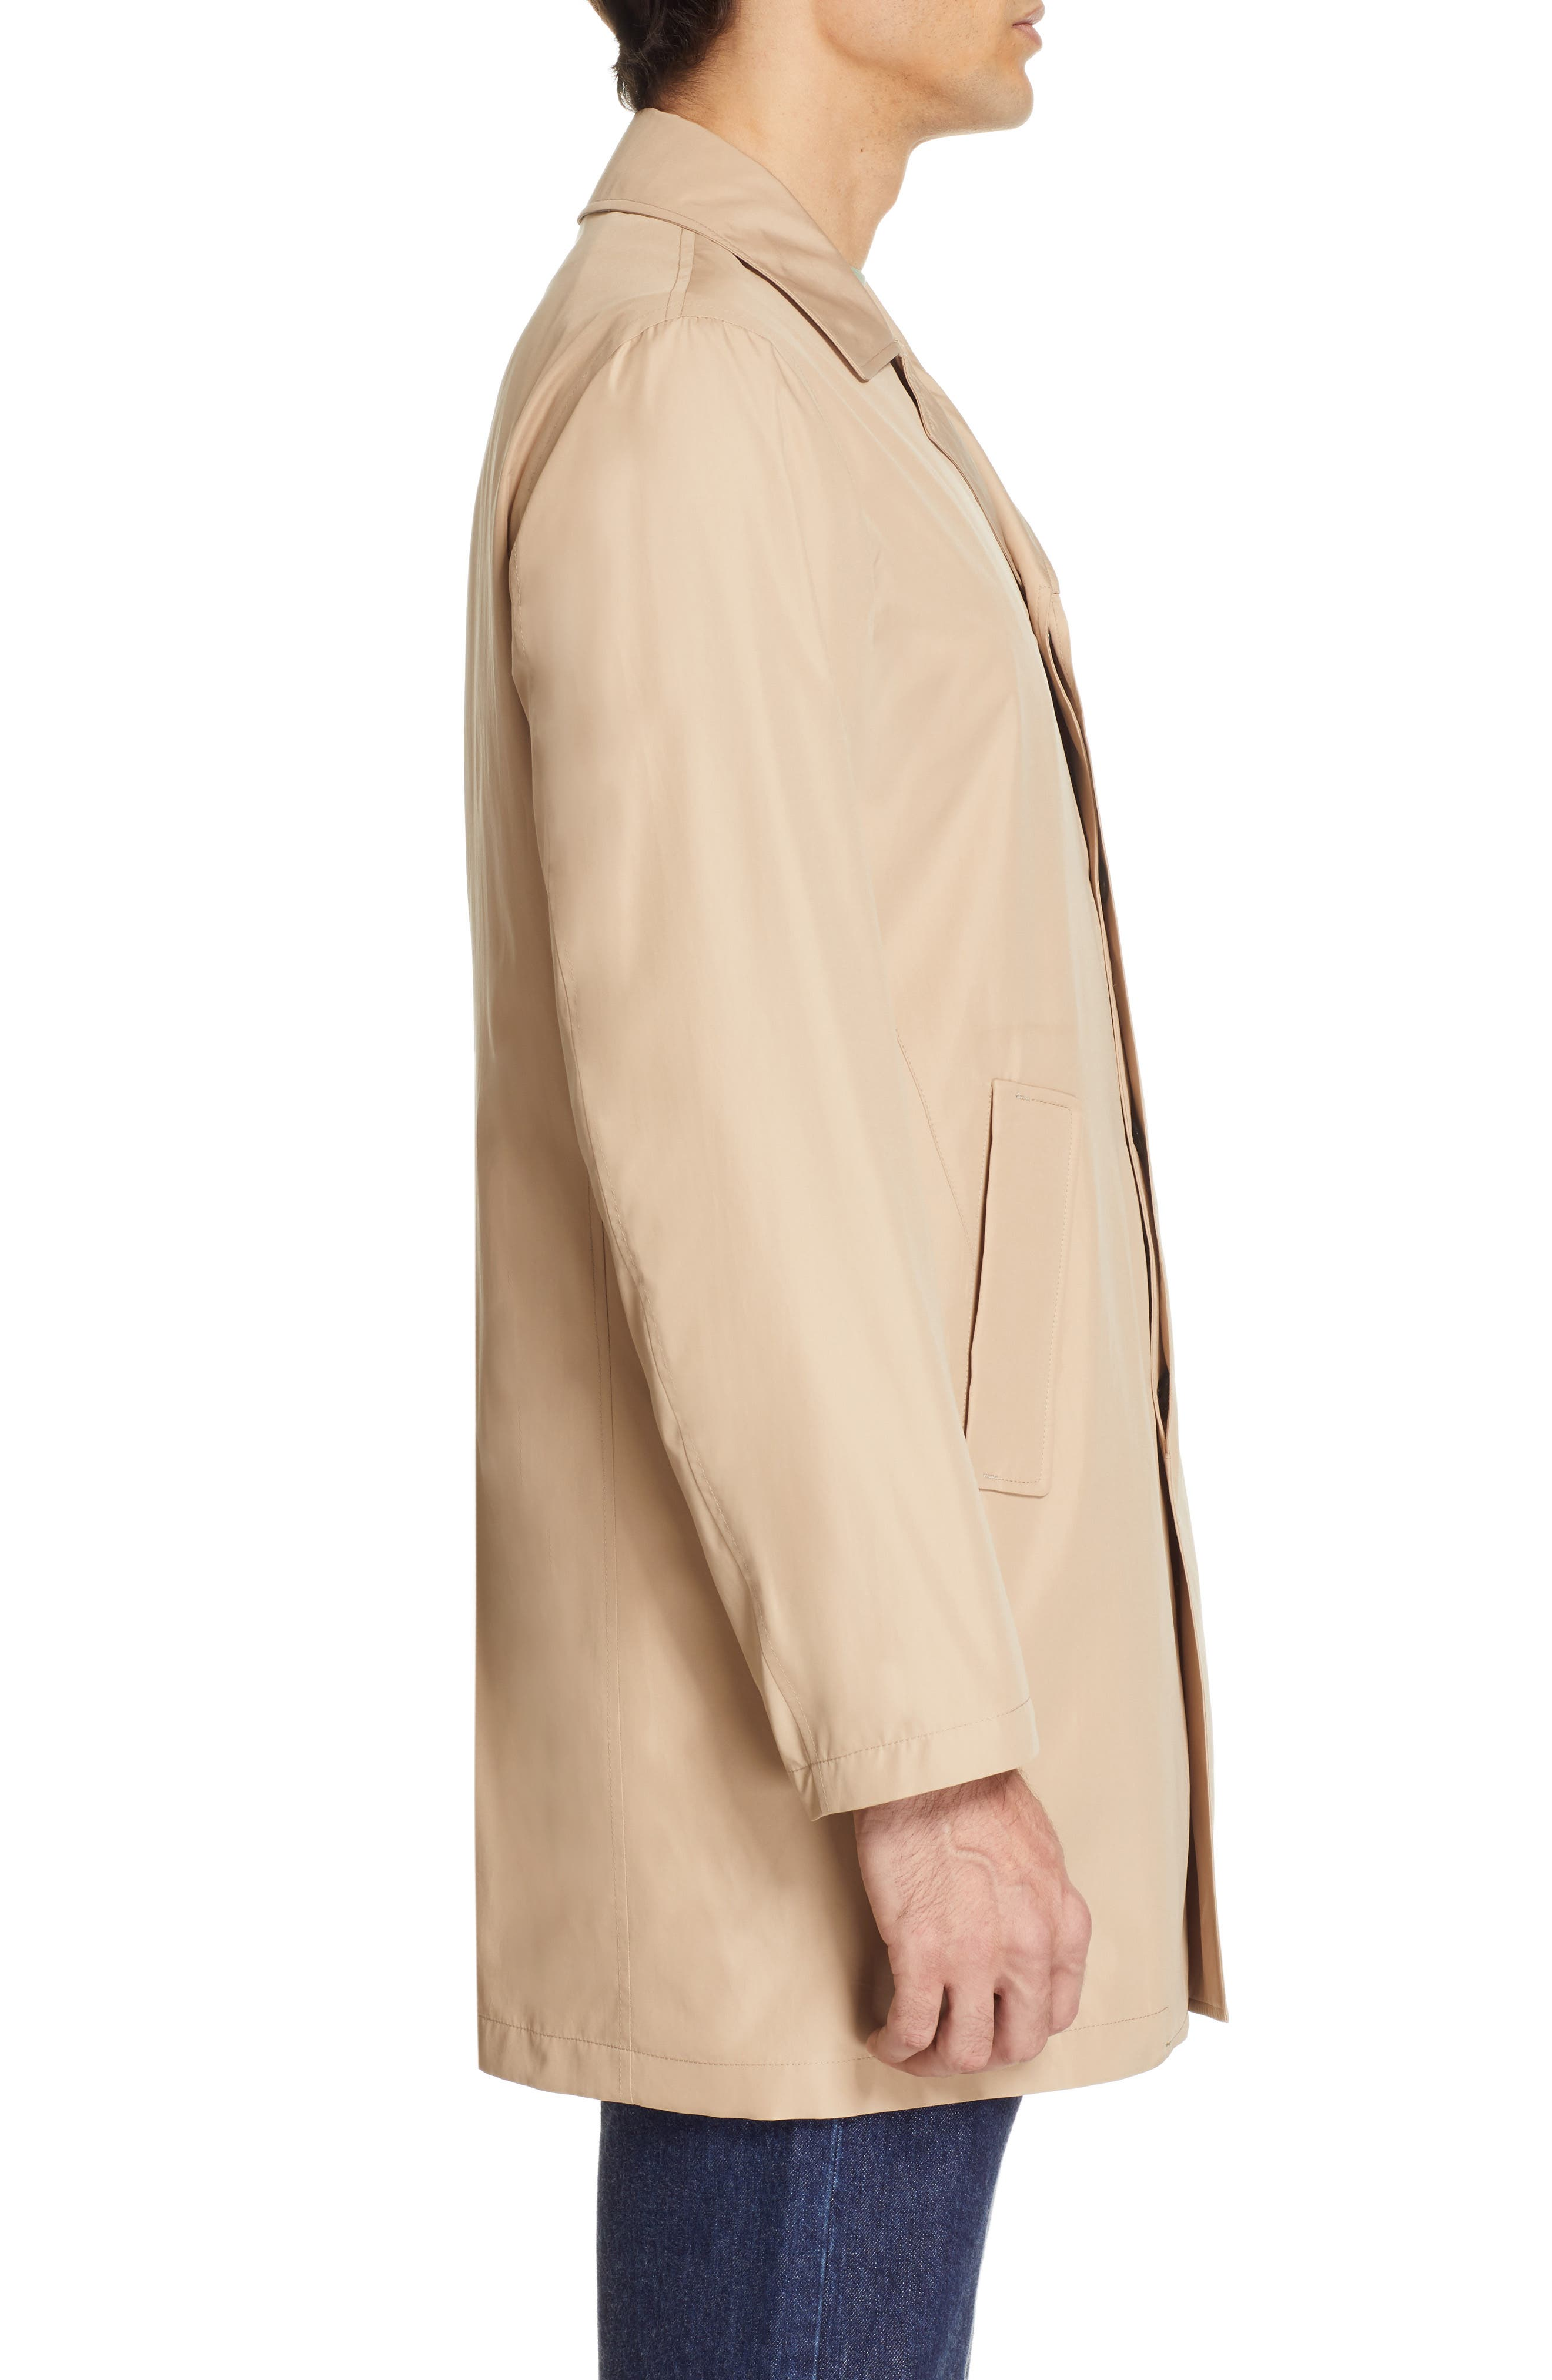 CANALI, Lightweight Overcoat, Alternate thumbnail 4, color, BEIGE